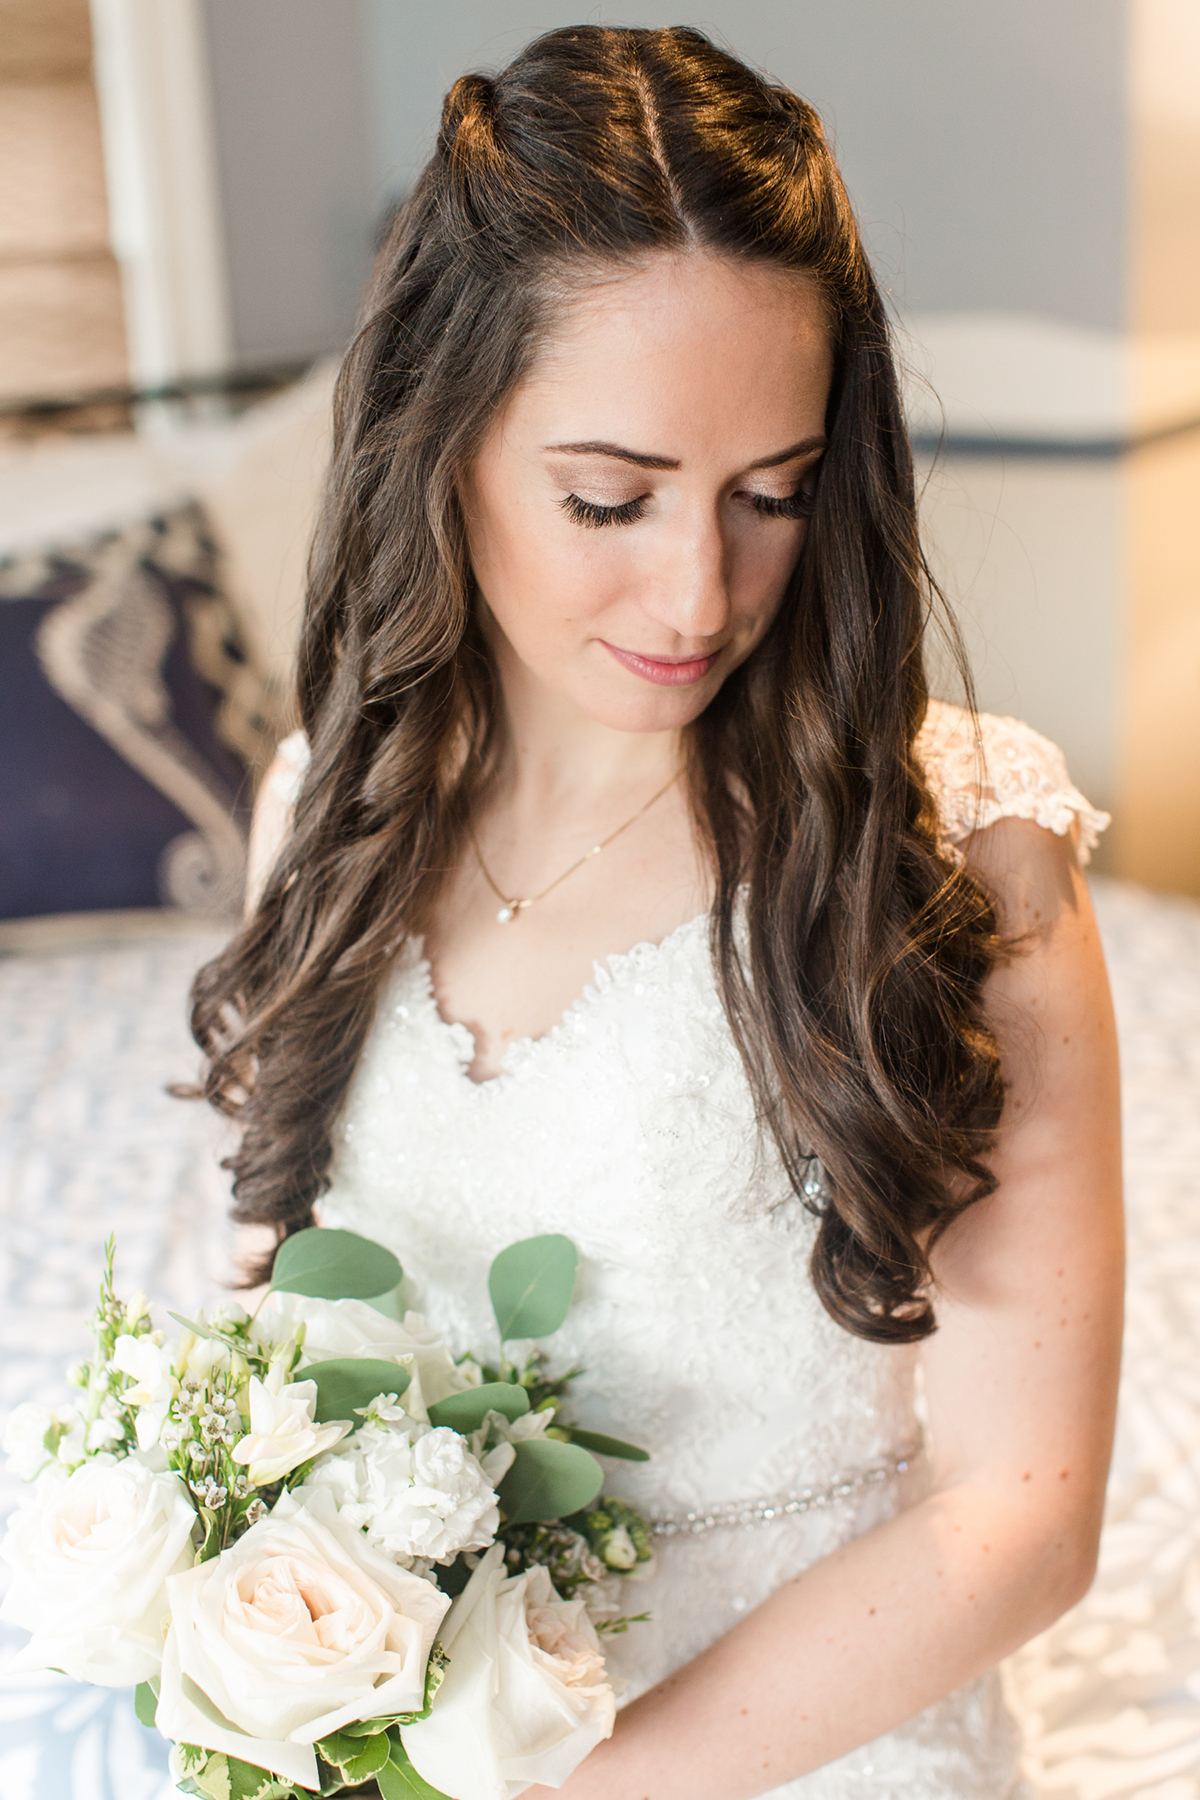 Colleen's got clicked while holding rose bouquet